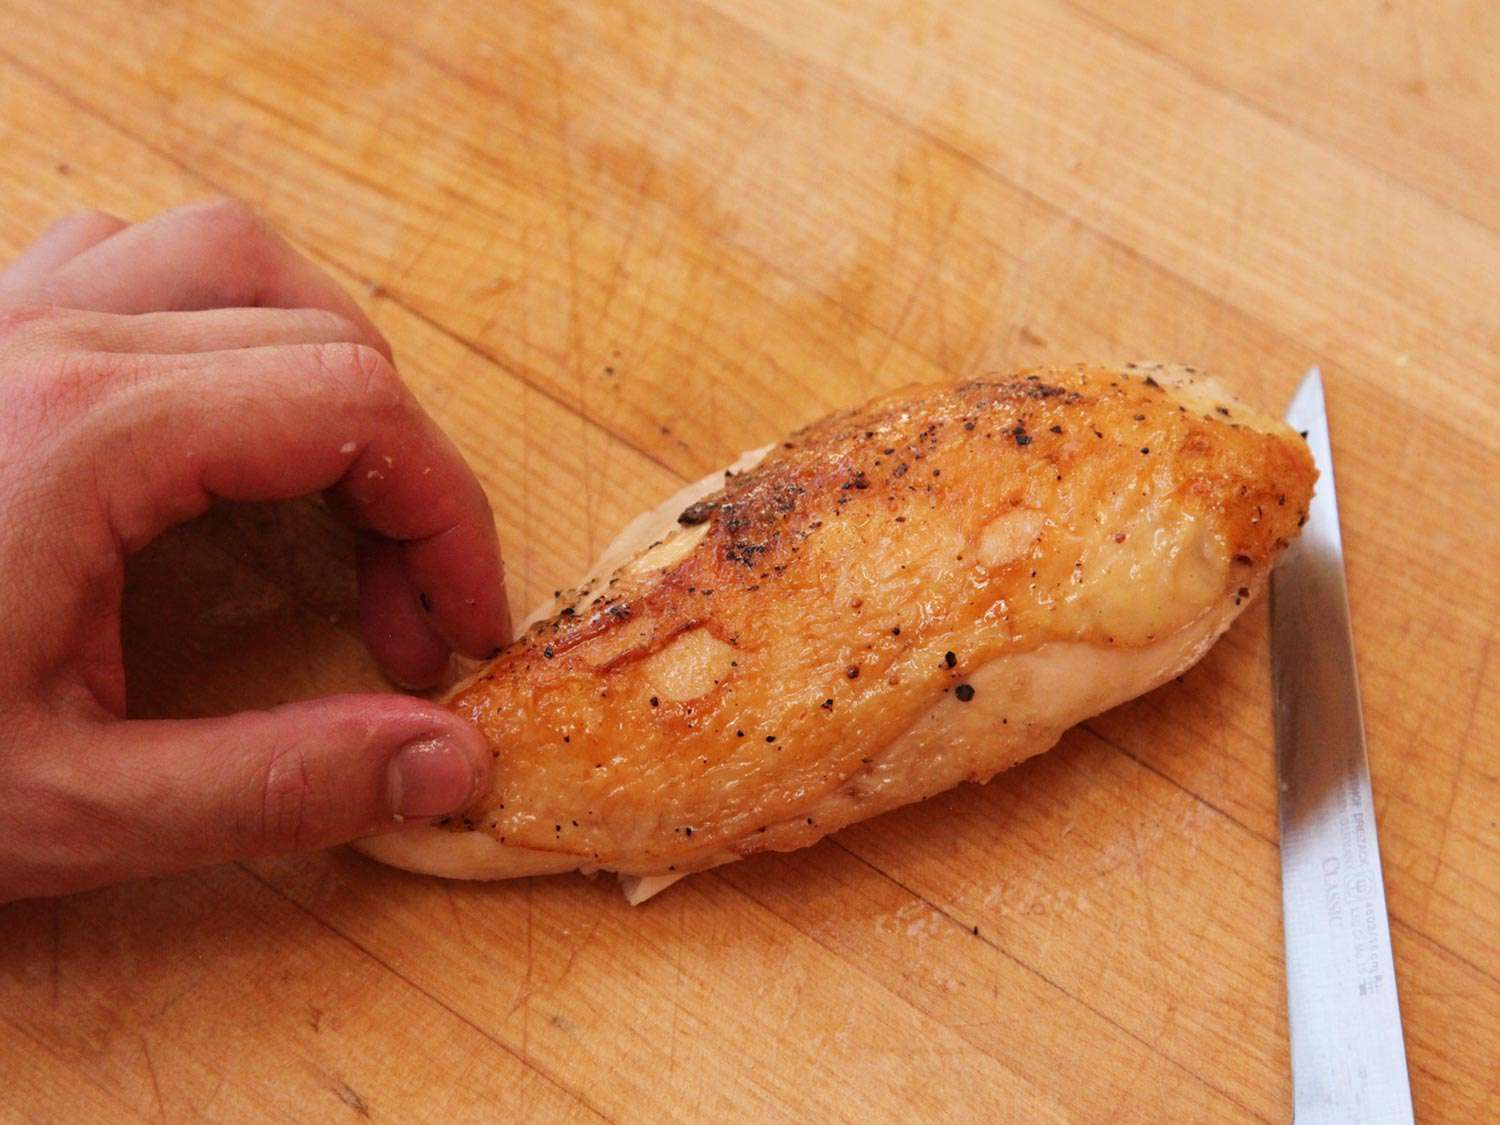 A chicken breast, cooked sous vide and finished on the stovetop, on a wooden cutting board next to a knife